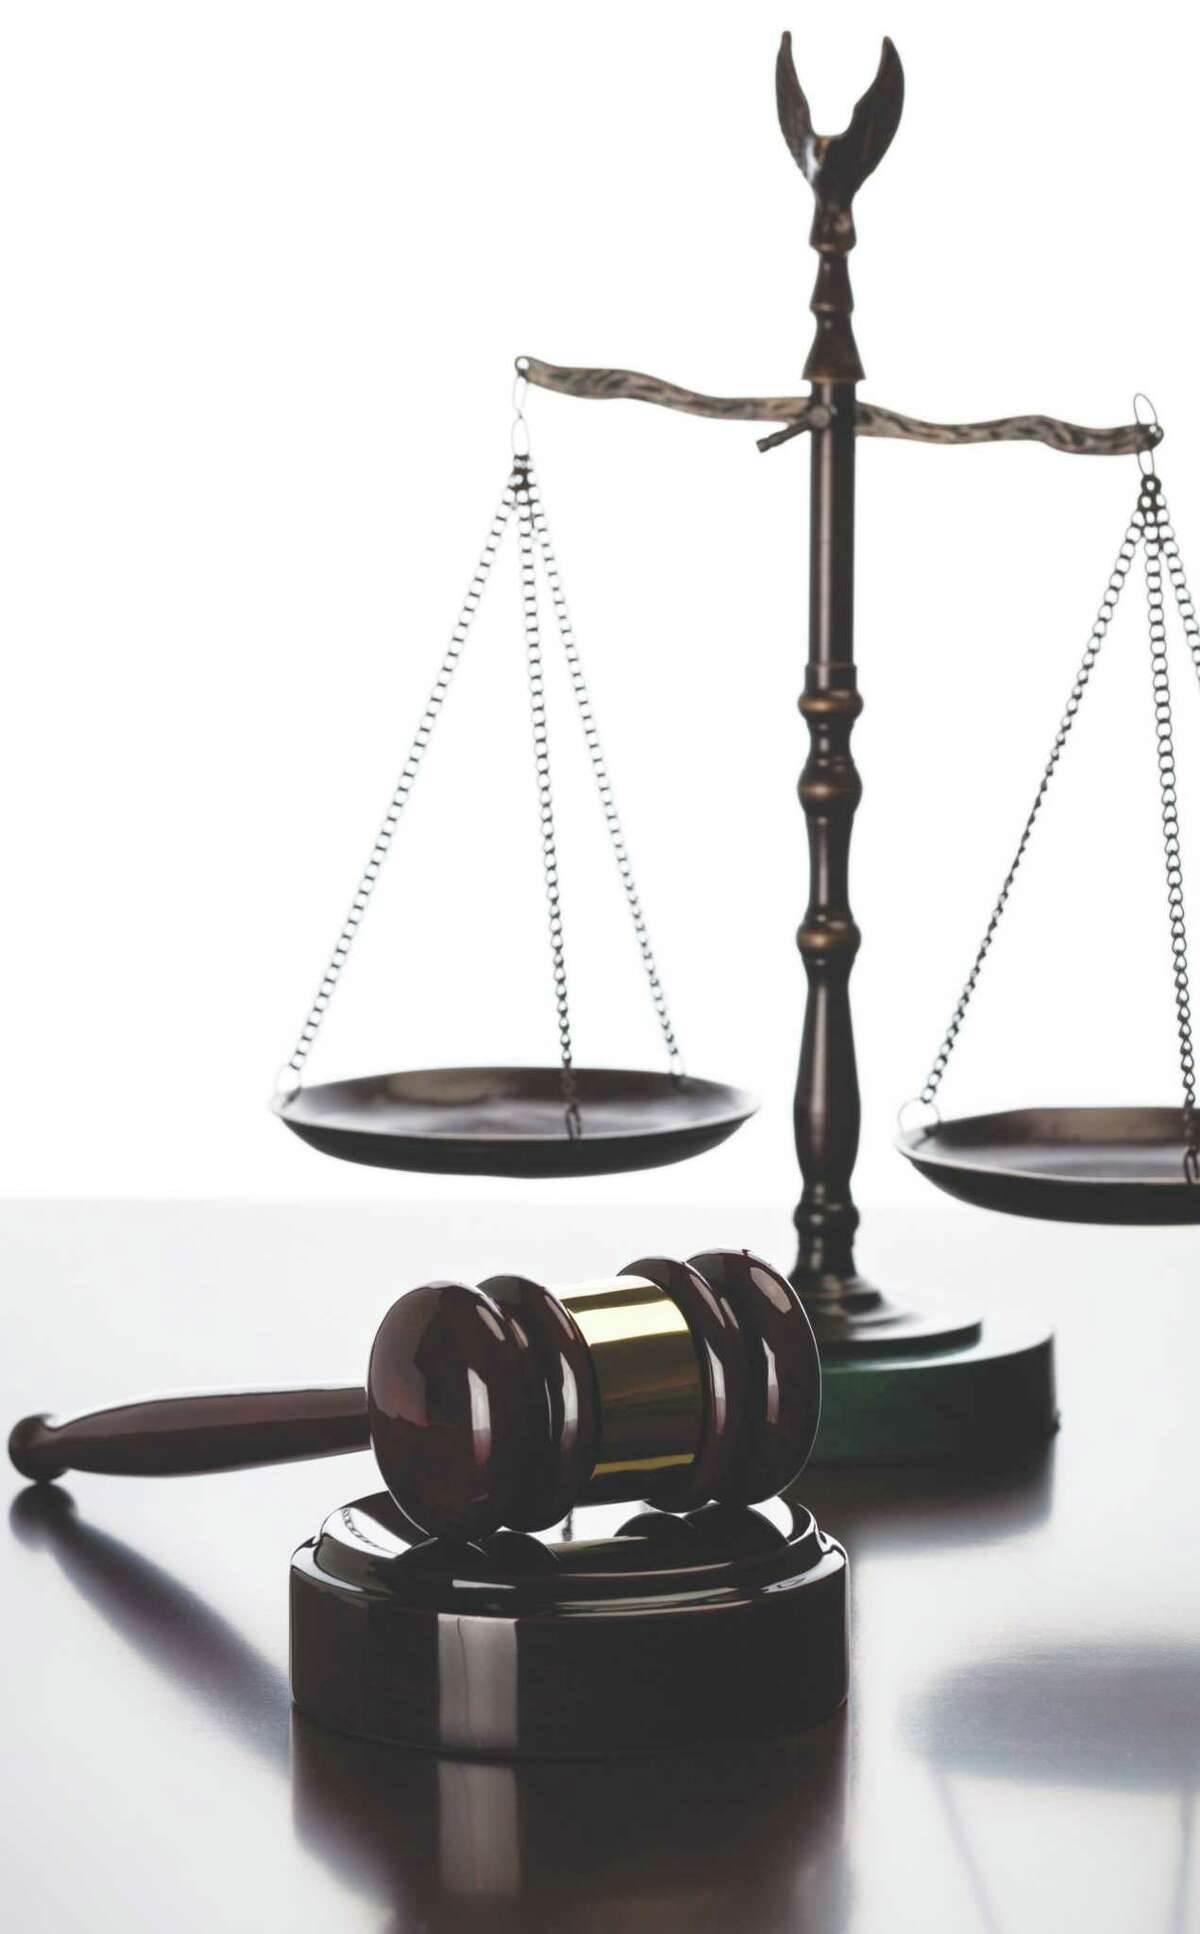 The Texas Indigent Defense Commission helps counties protect the legal rights of the poor.